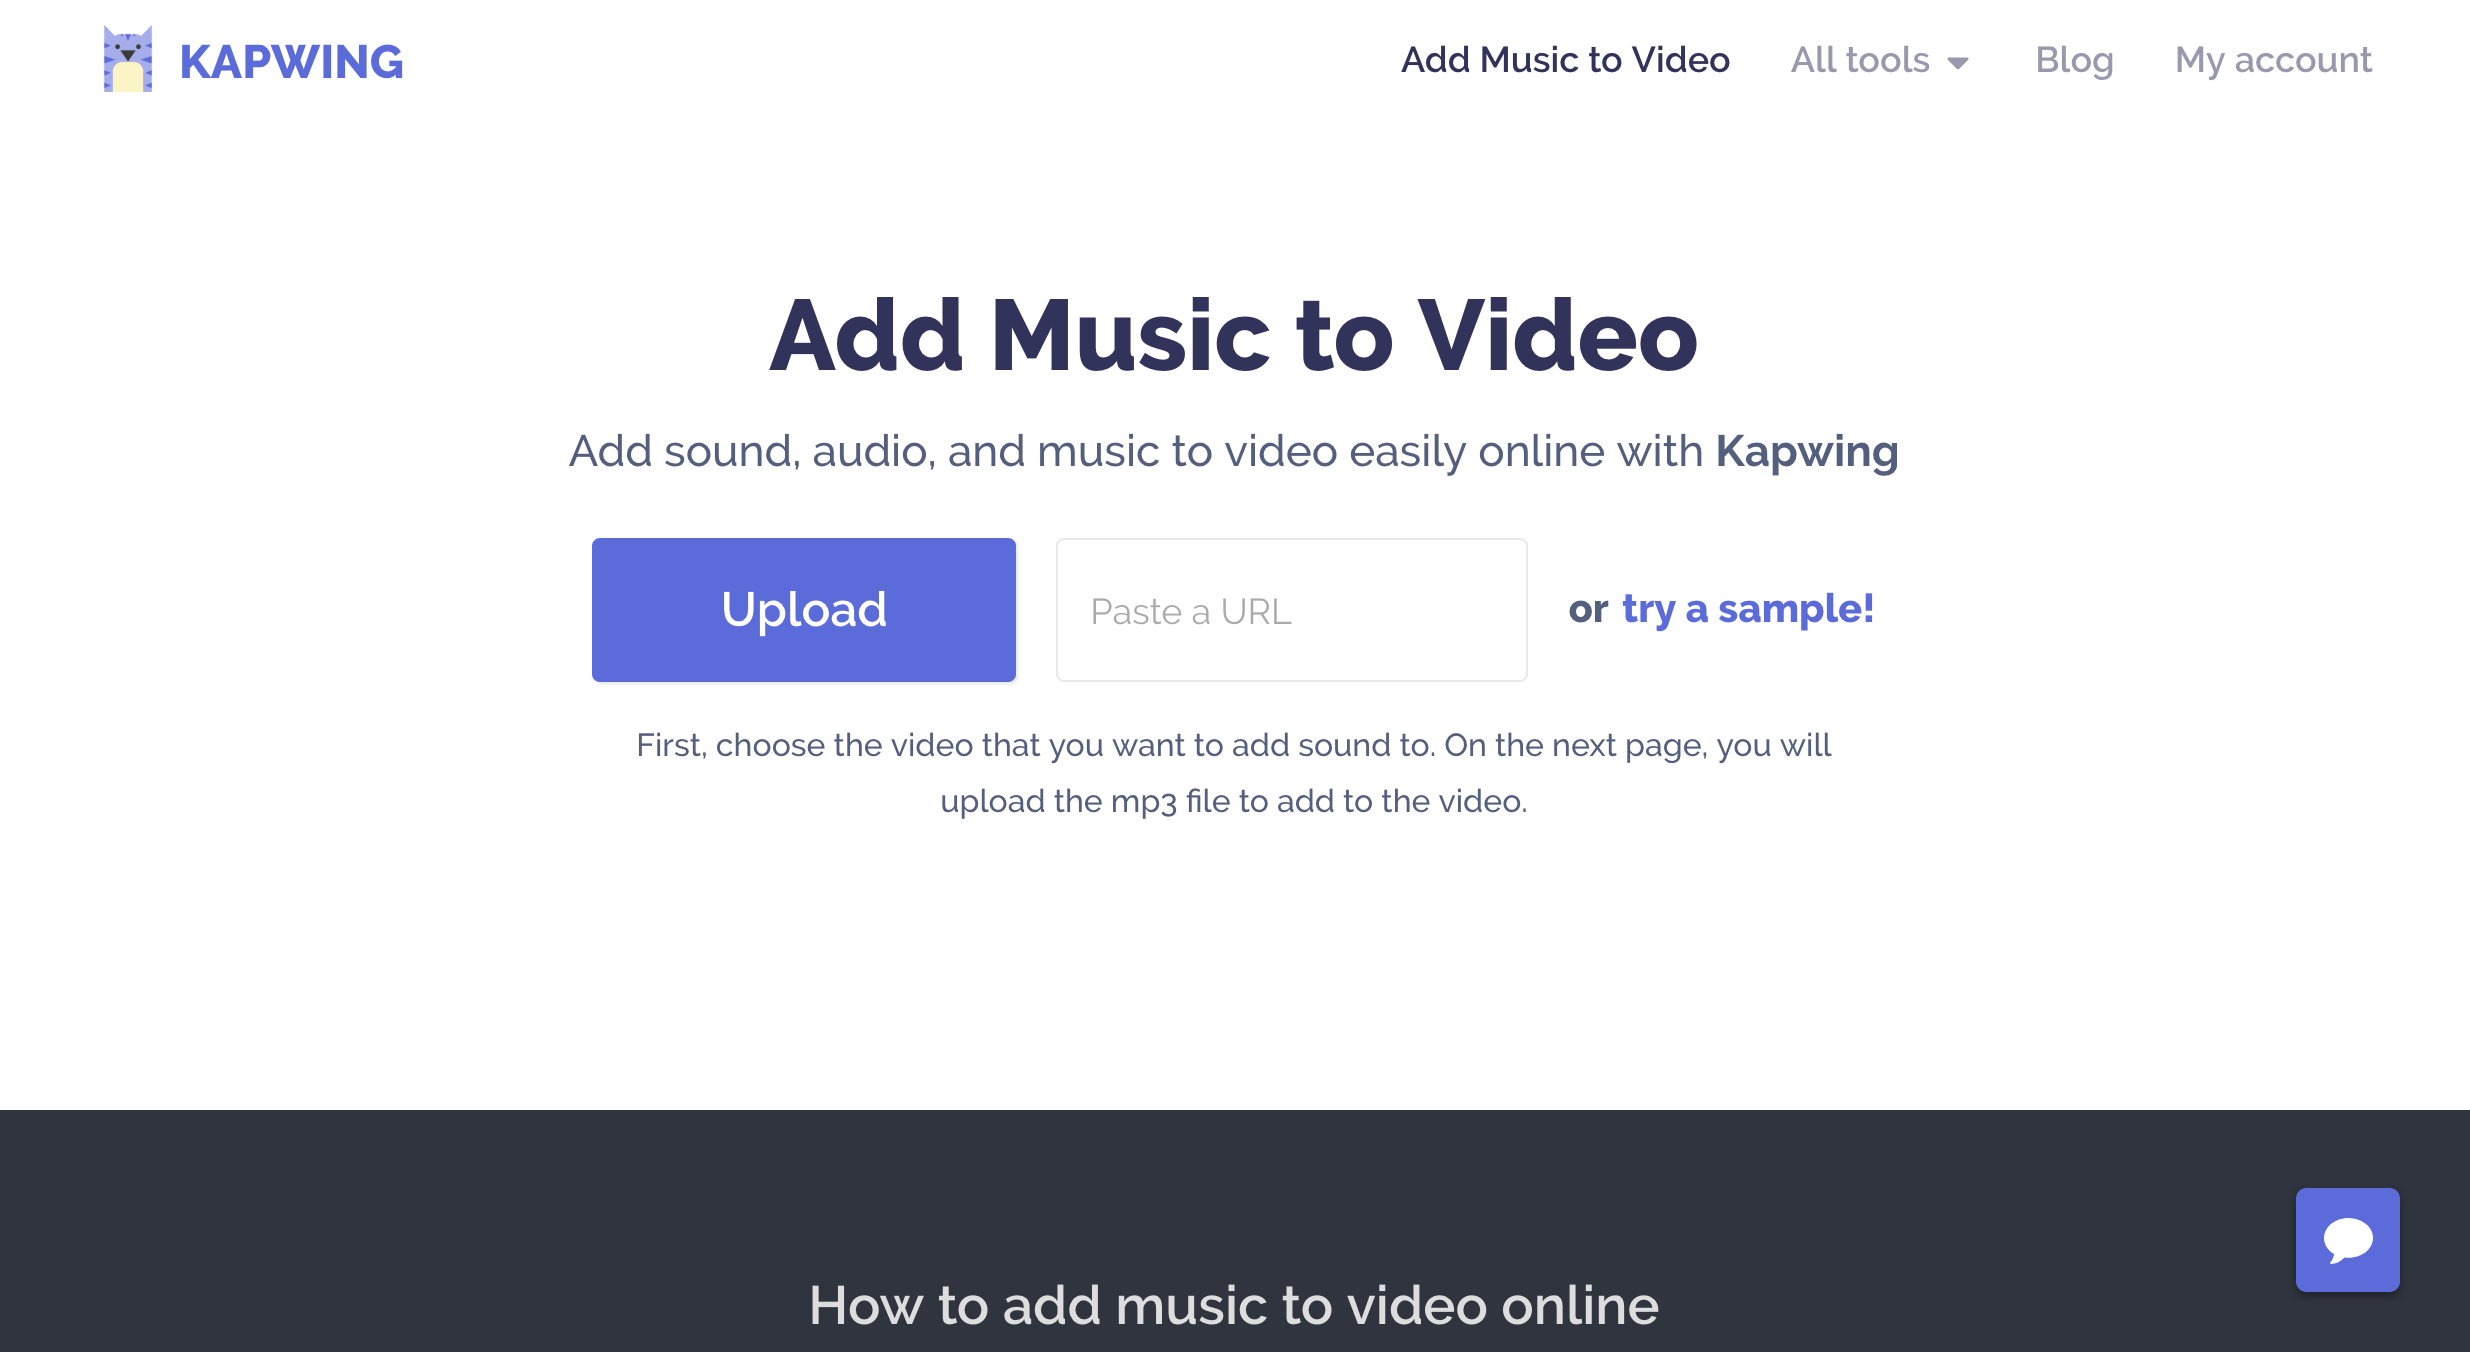 Add Music to video home page